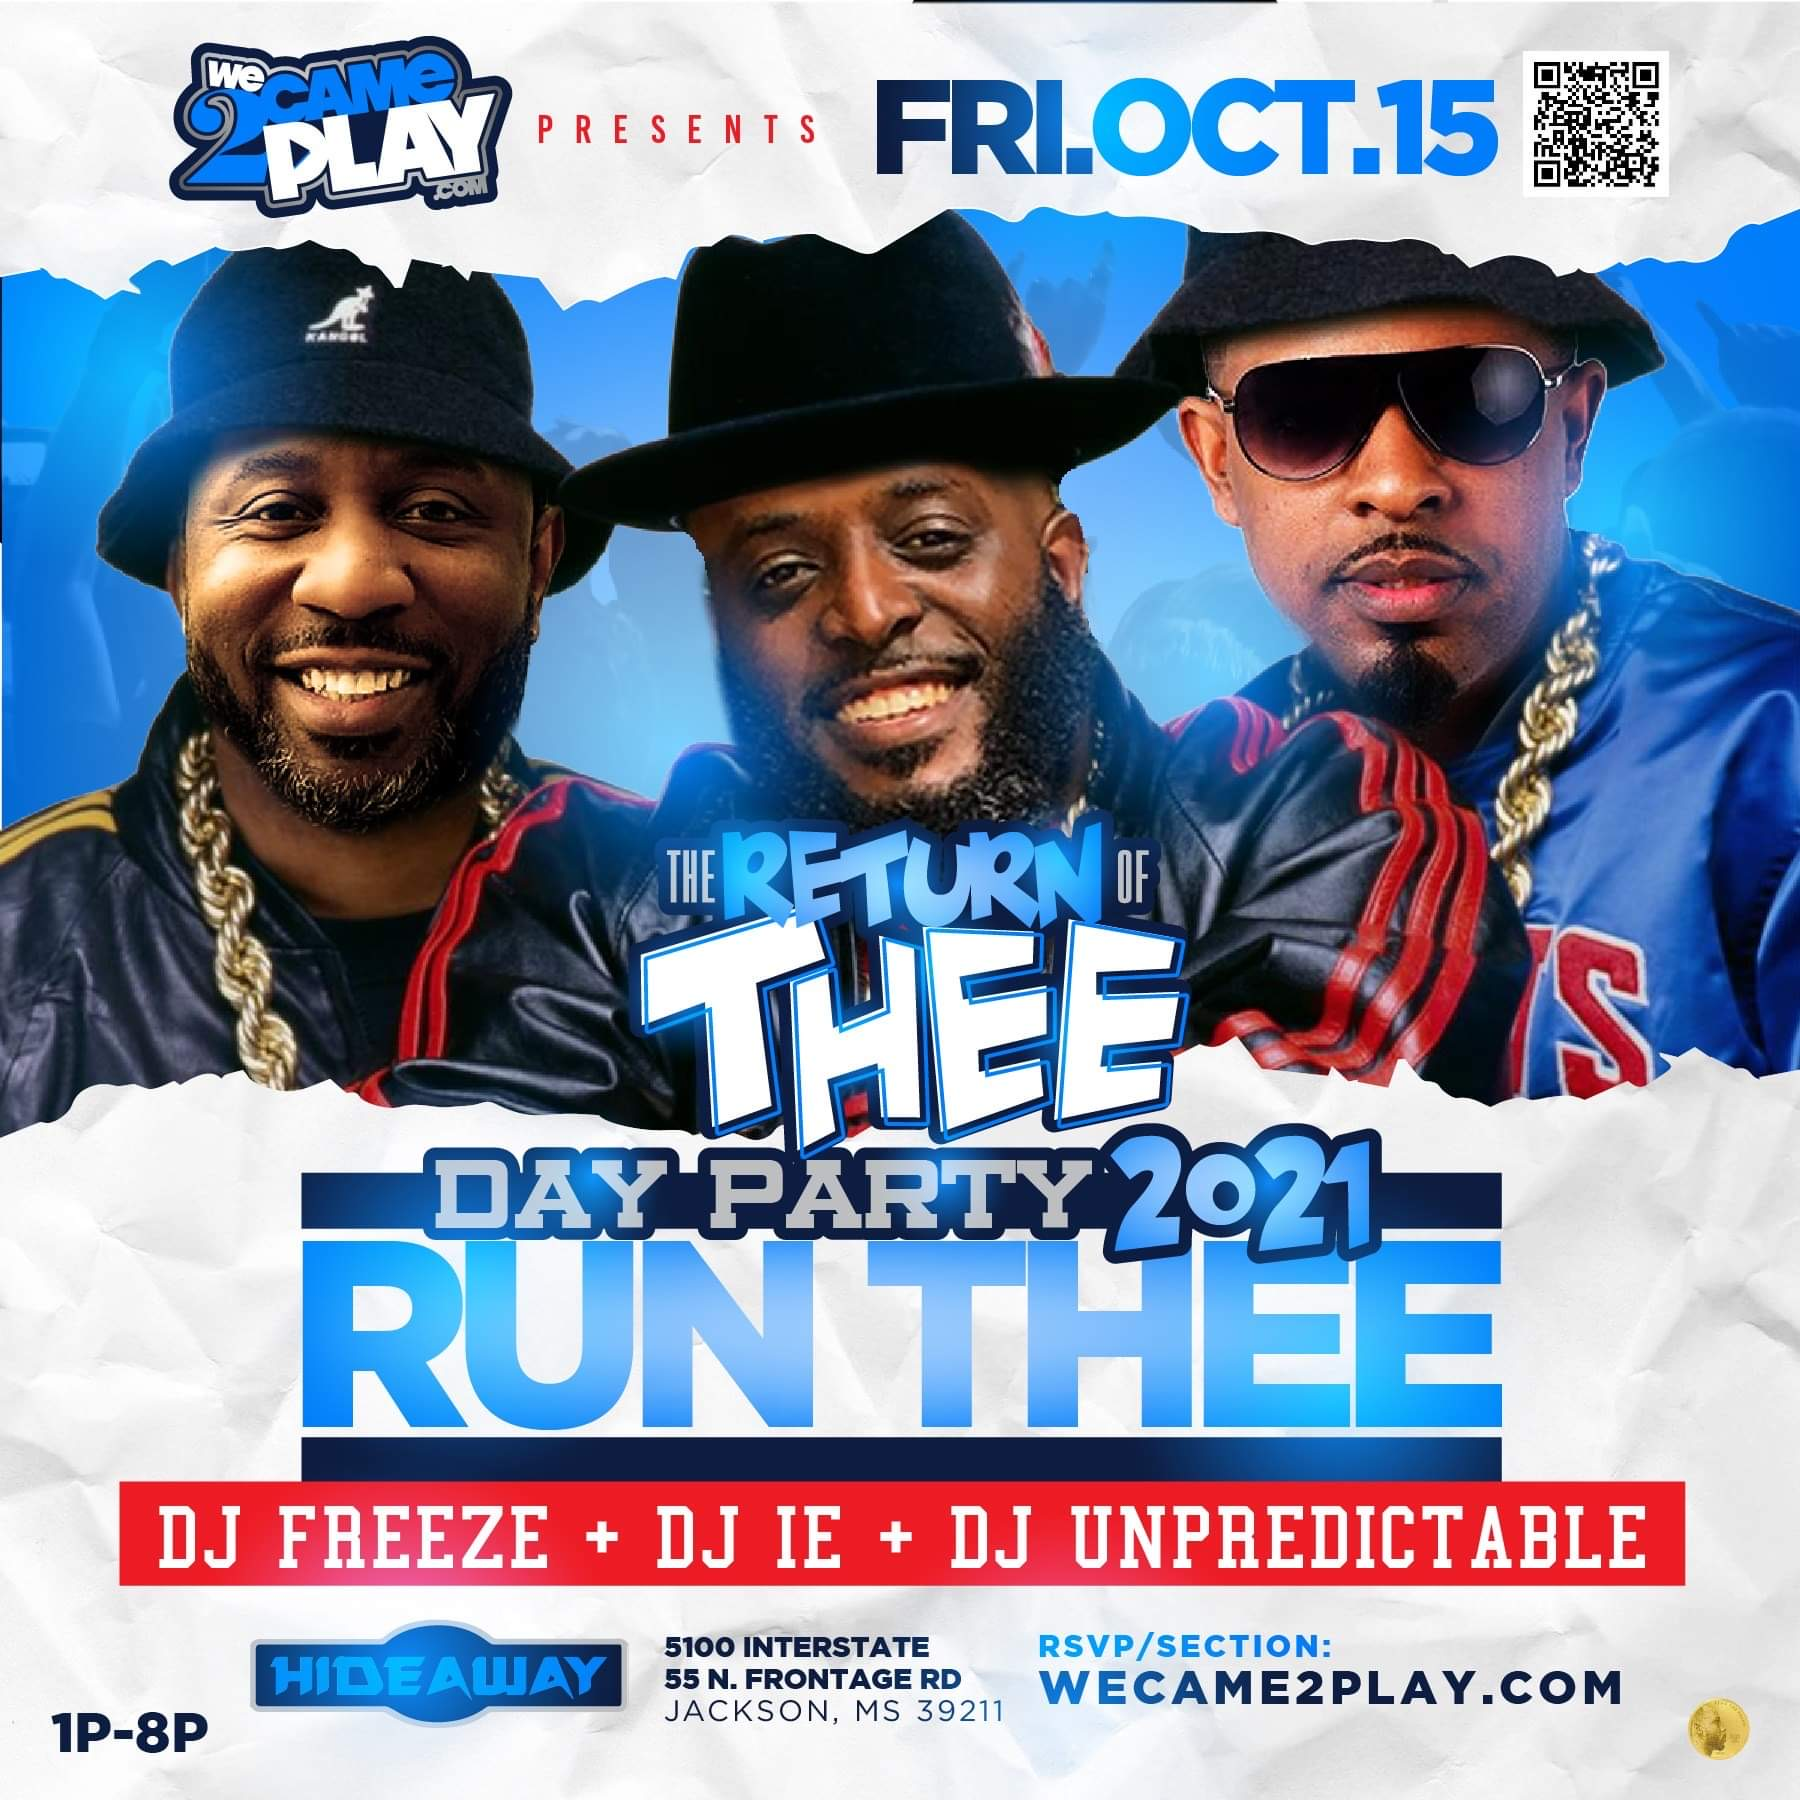 THEE DAY PARTY 2021